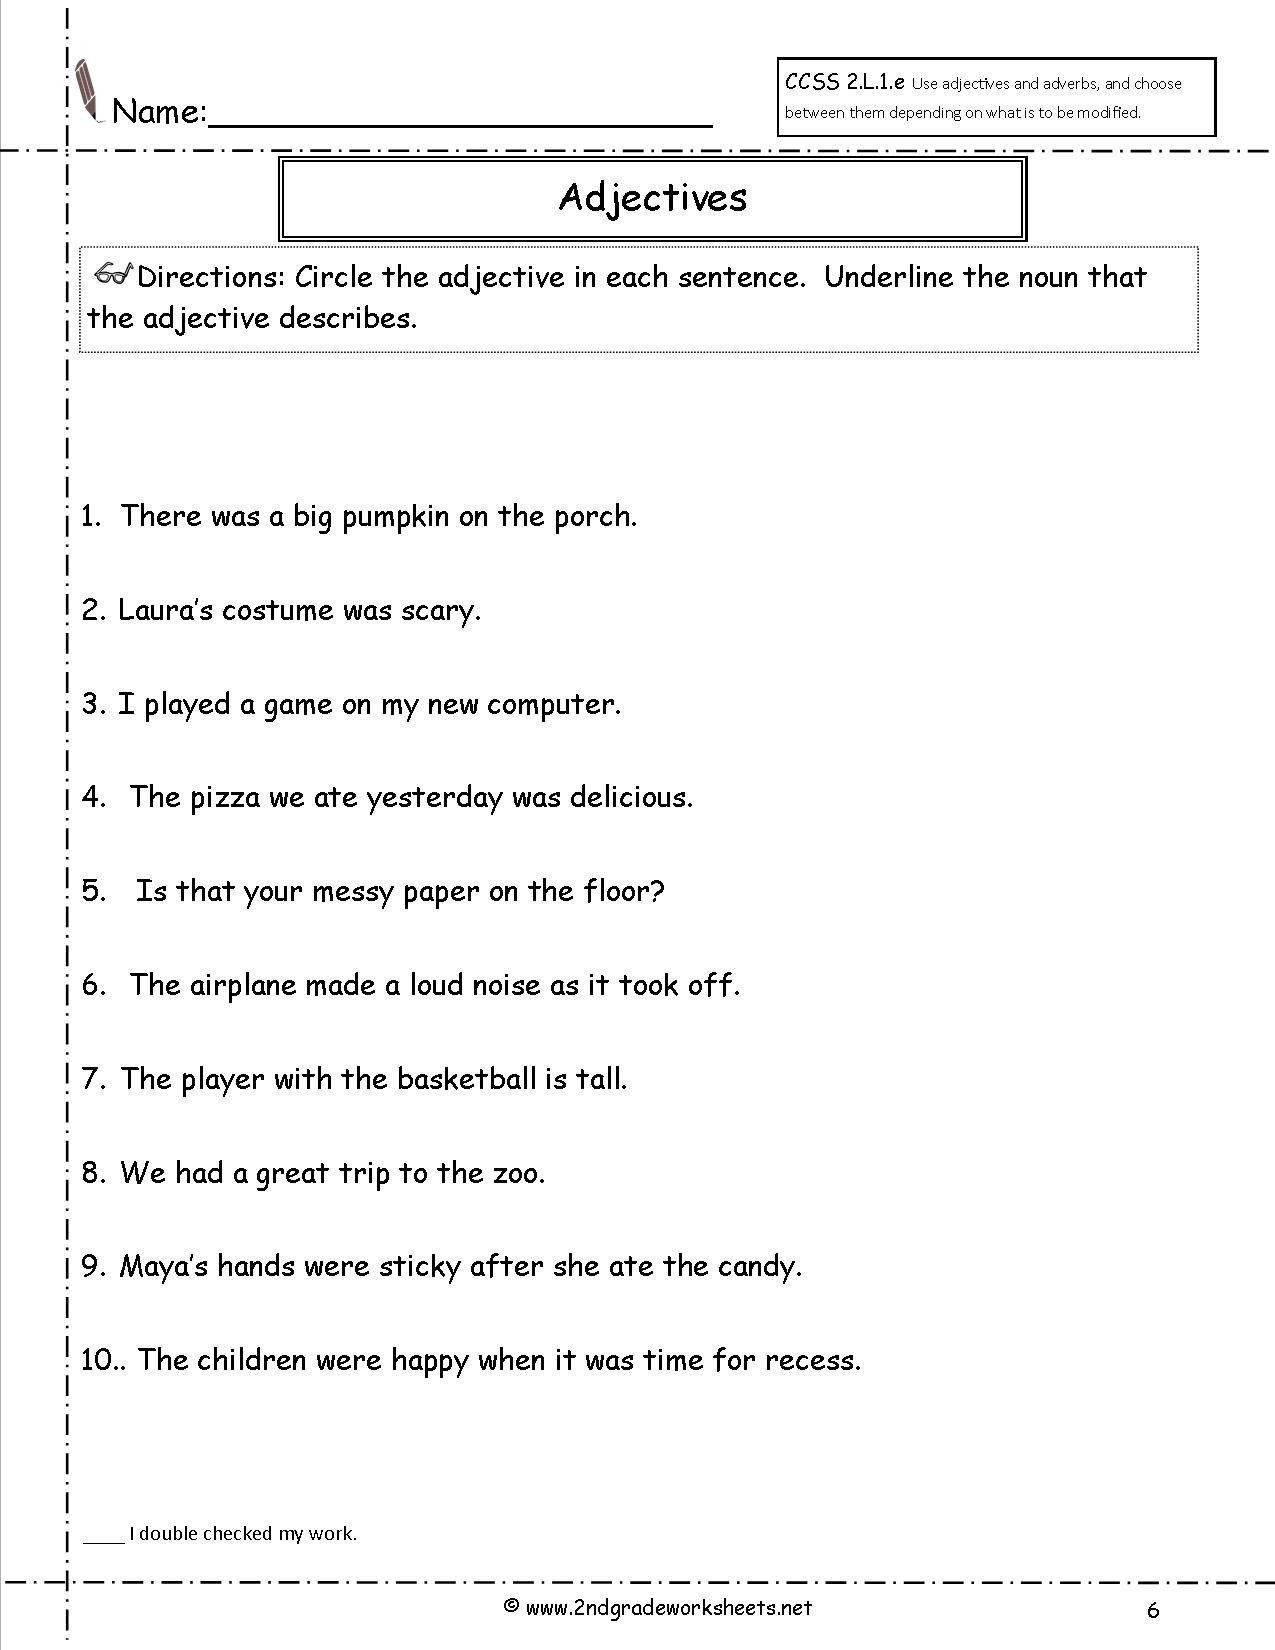 Adjectives Worksheets for Grade 2 Adjective Worksheet with Images